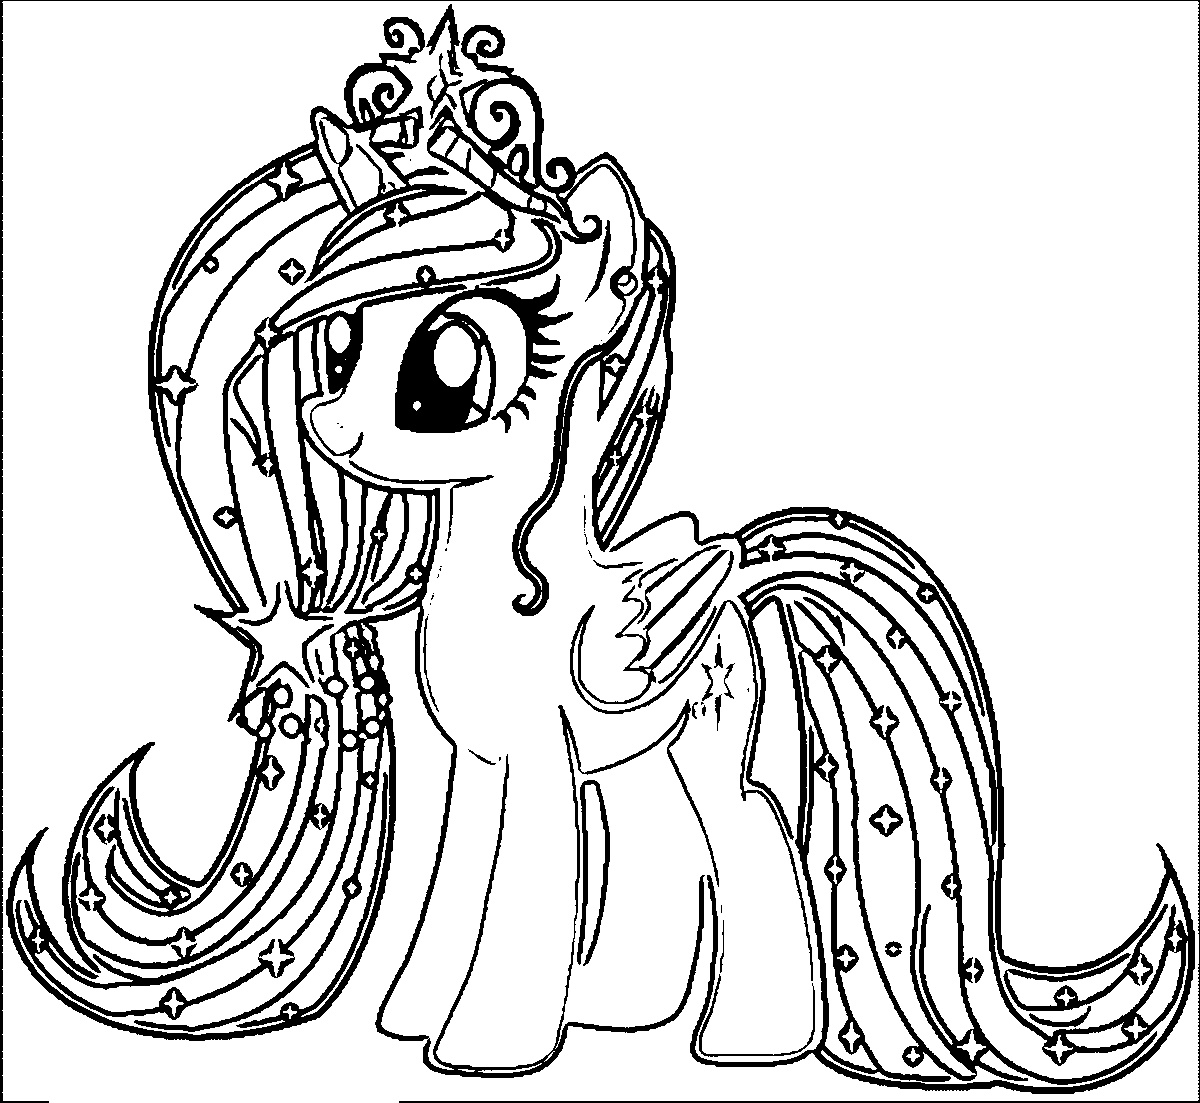 my little pony drawing pages my little pony coloring pages for pony lovers educative my pages pony little drawing